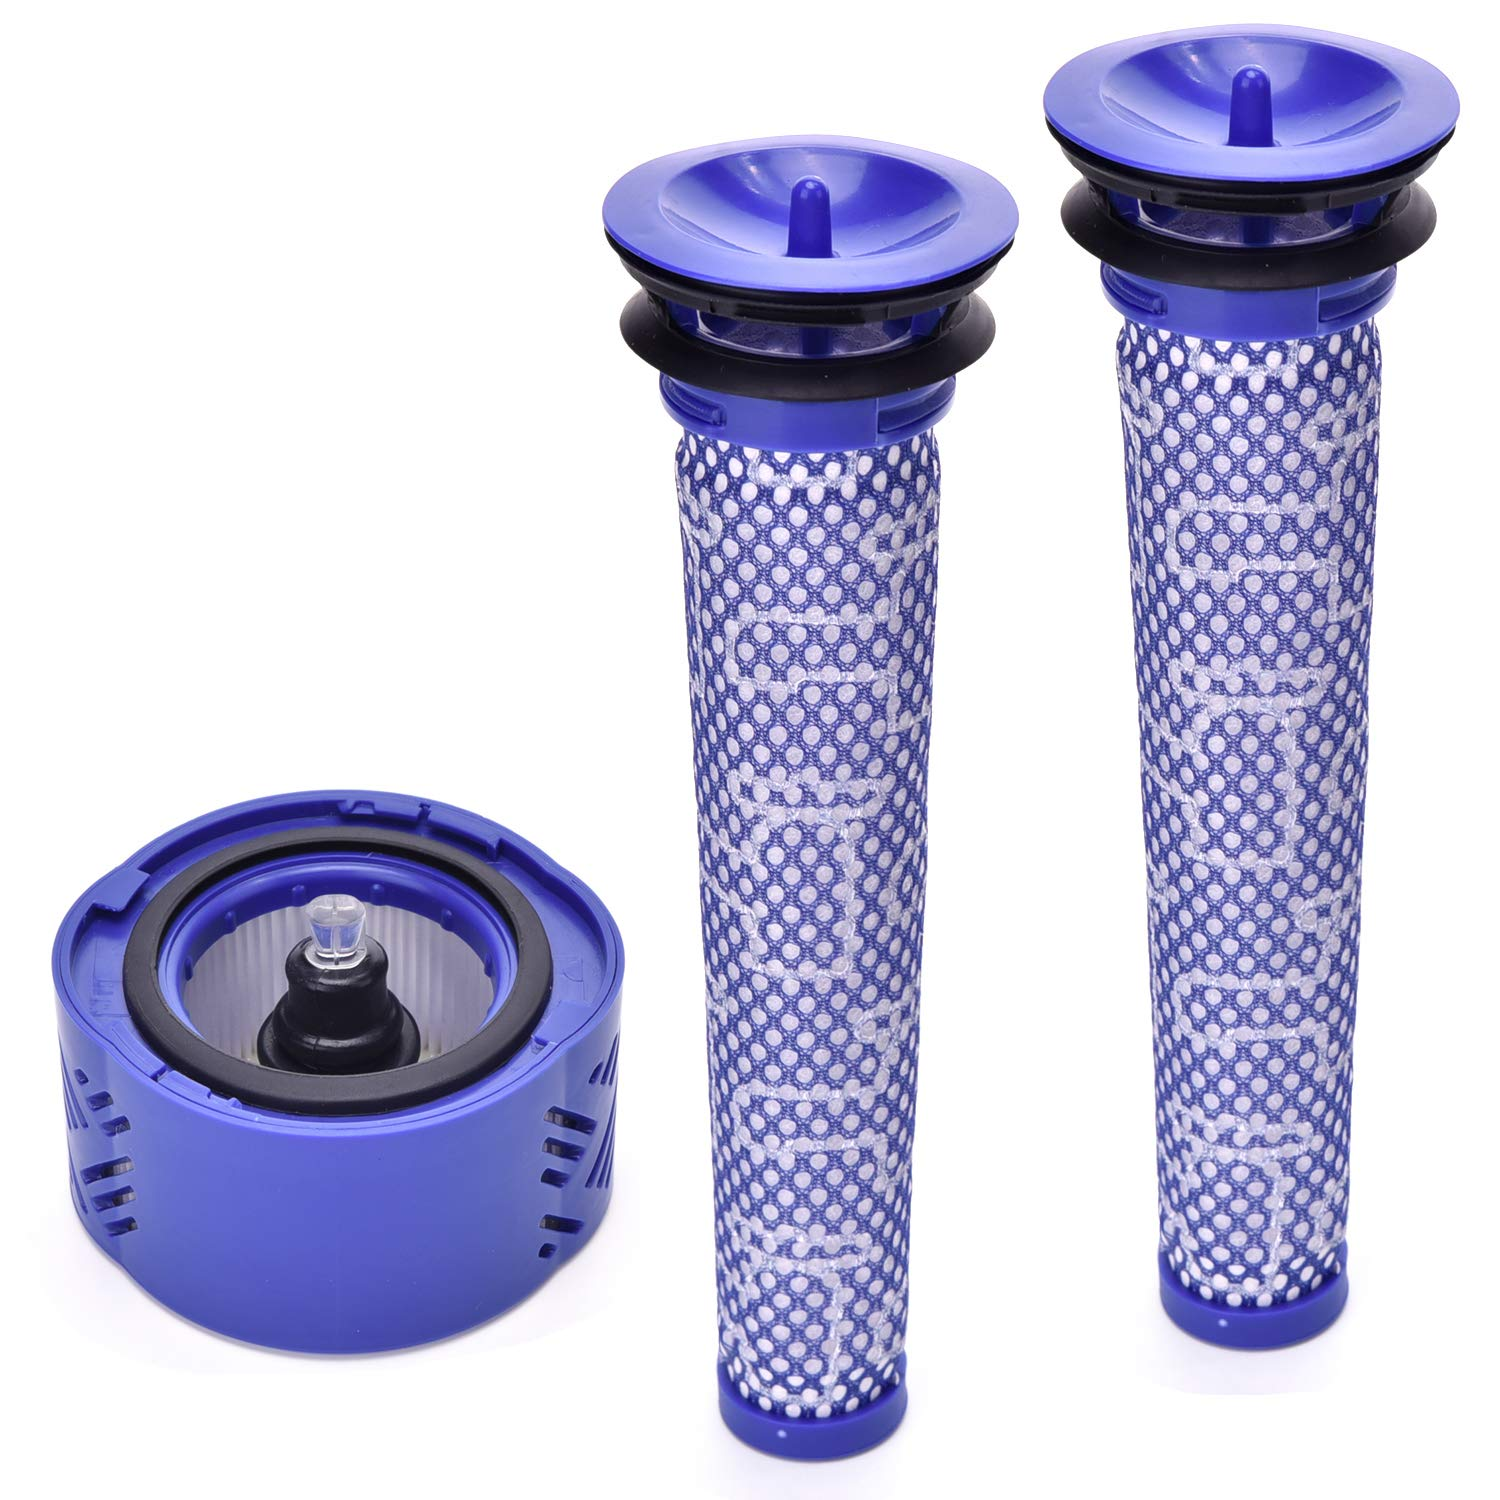 2X Pre Filter + 1X Hepa Post-Filter Kit For Dyson V6 Cordless Stick Vacuum, Dyson Filter Replacements Pre-Filter (965661-01) A